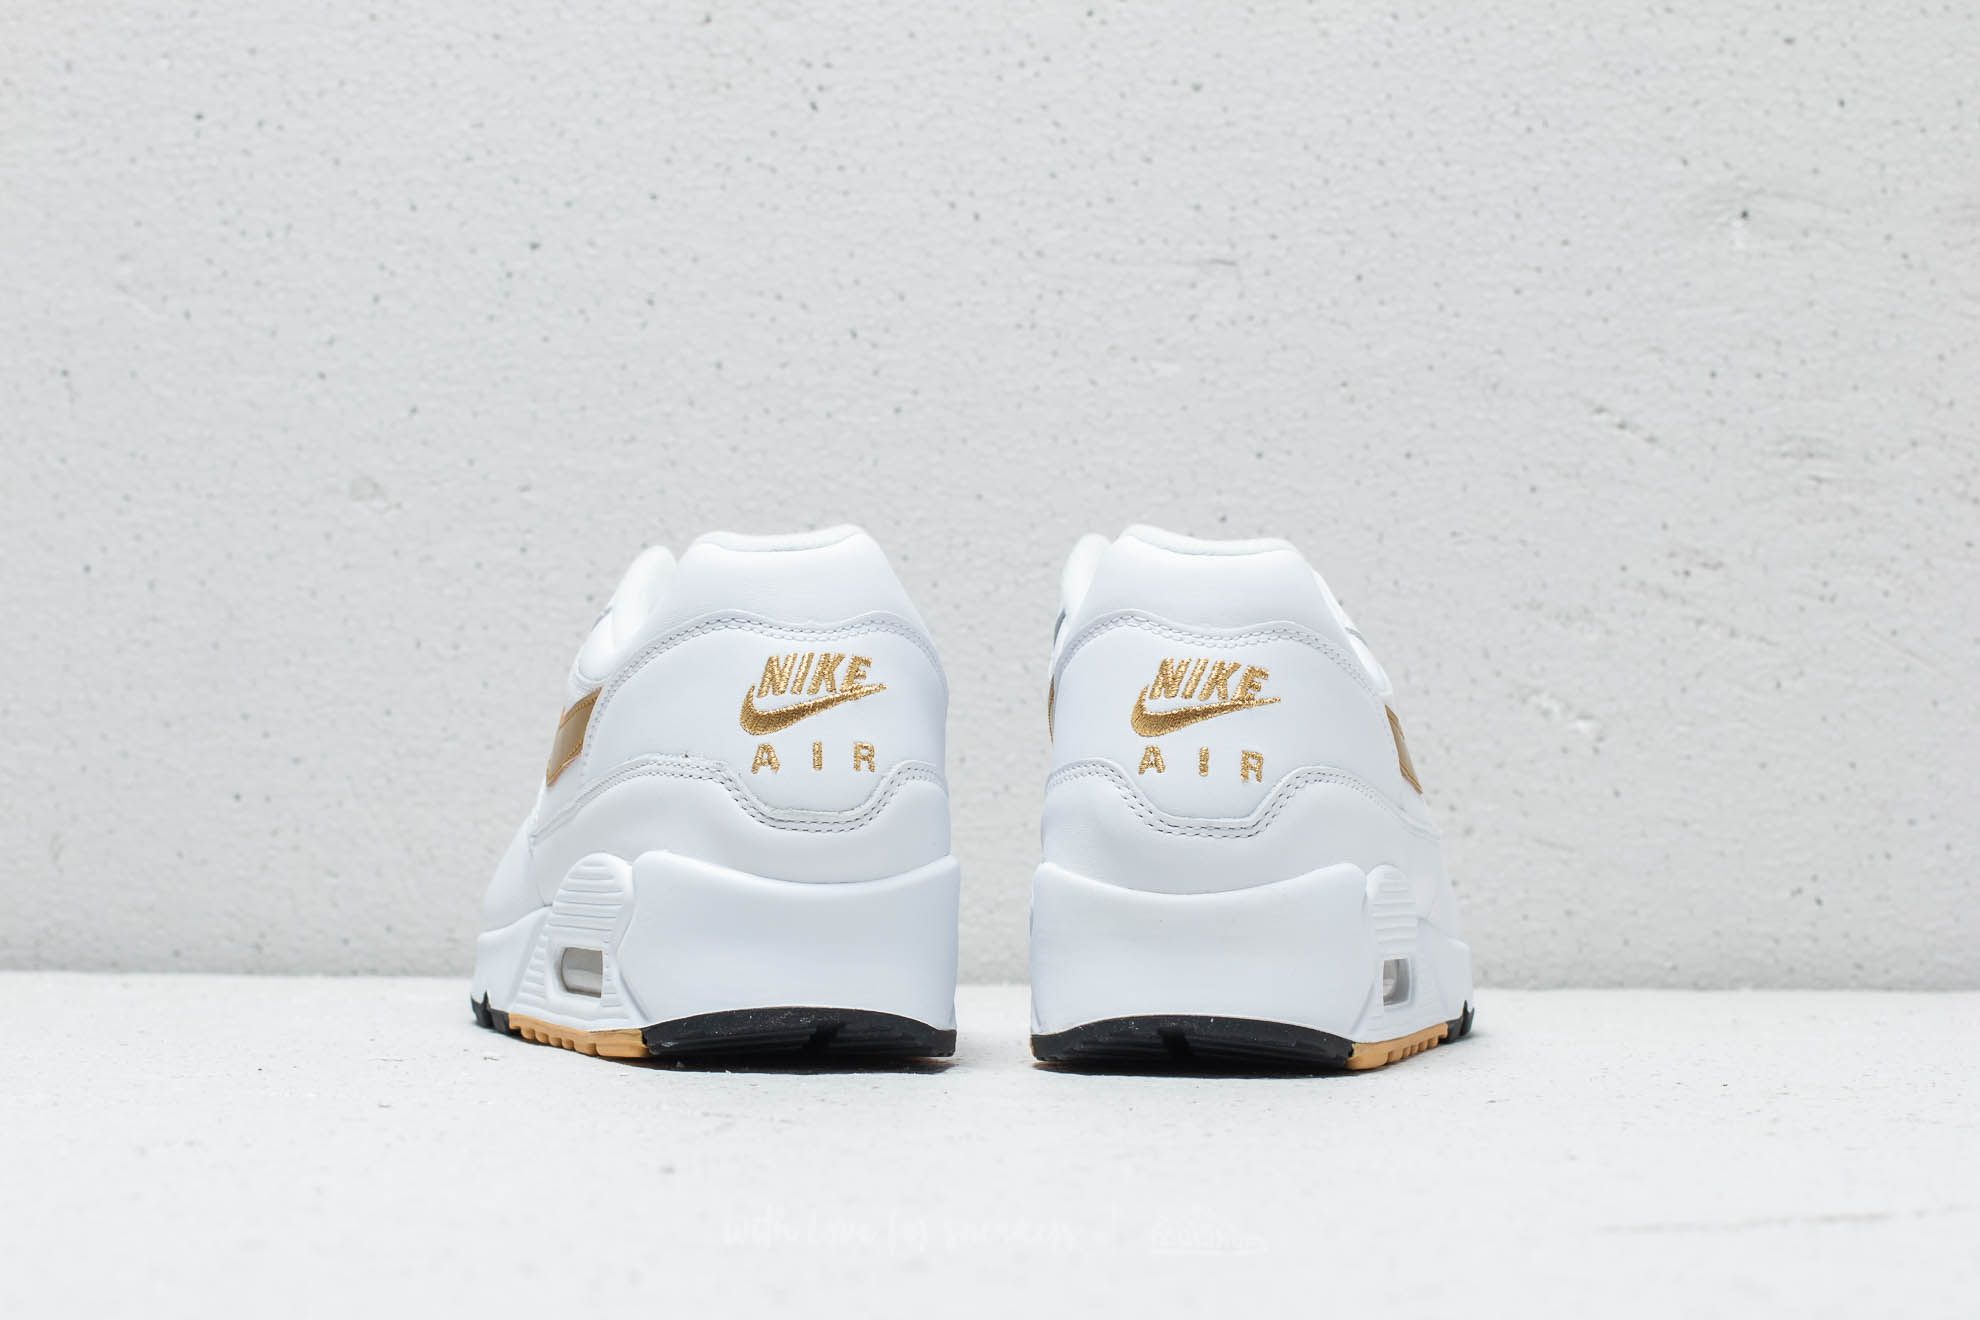 designer fashion c2b40 7616a ... store nike air max 90 1 white metallic gold black at a great price  67d1d 5423c